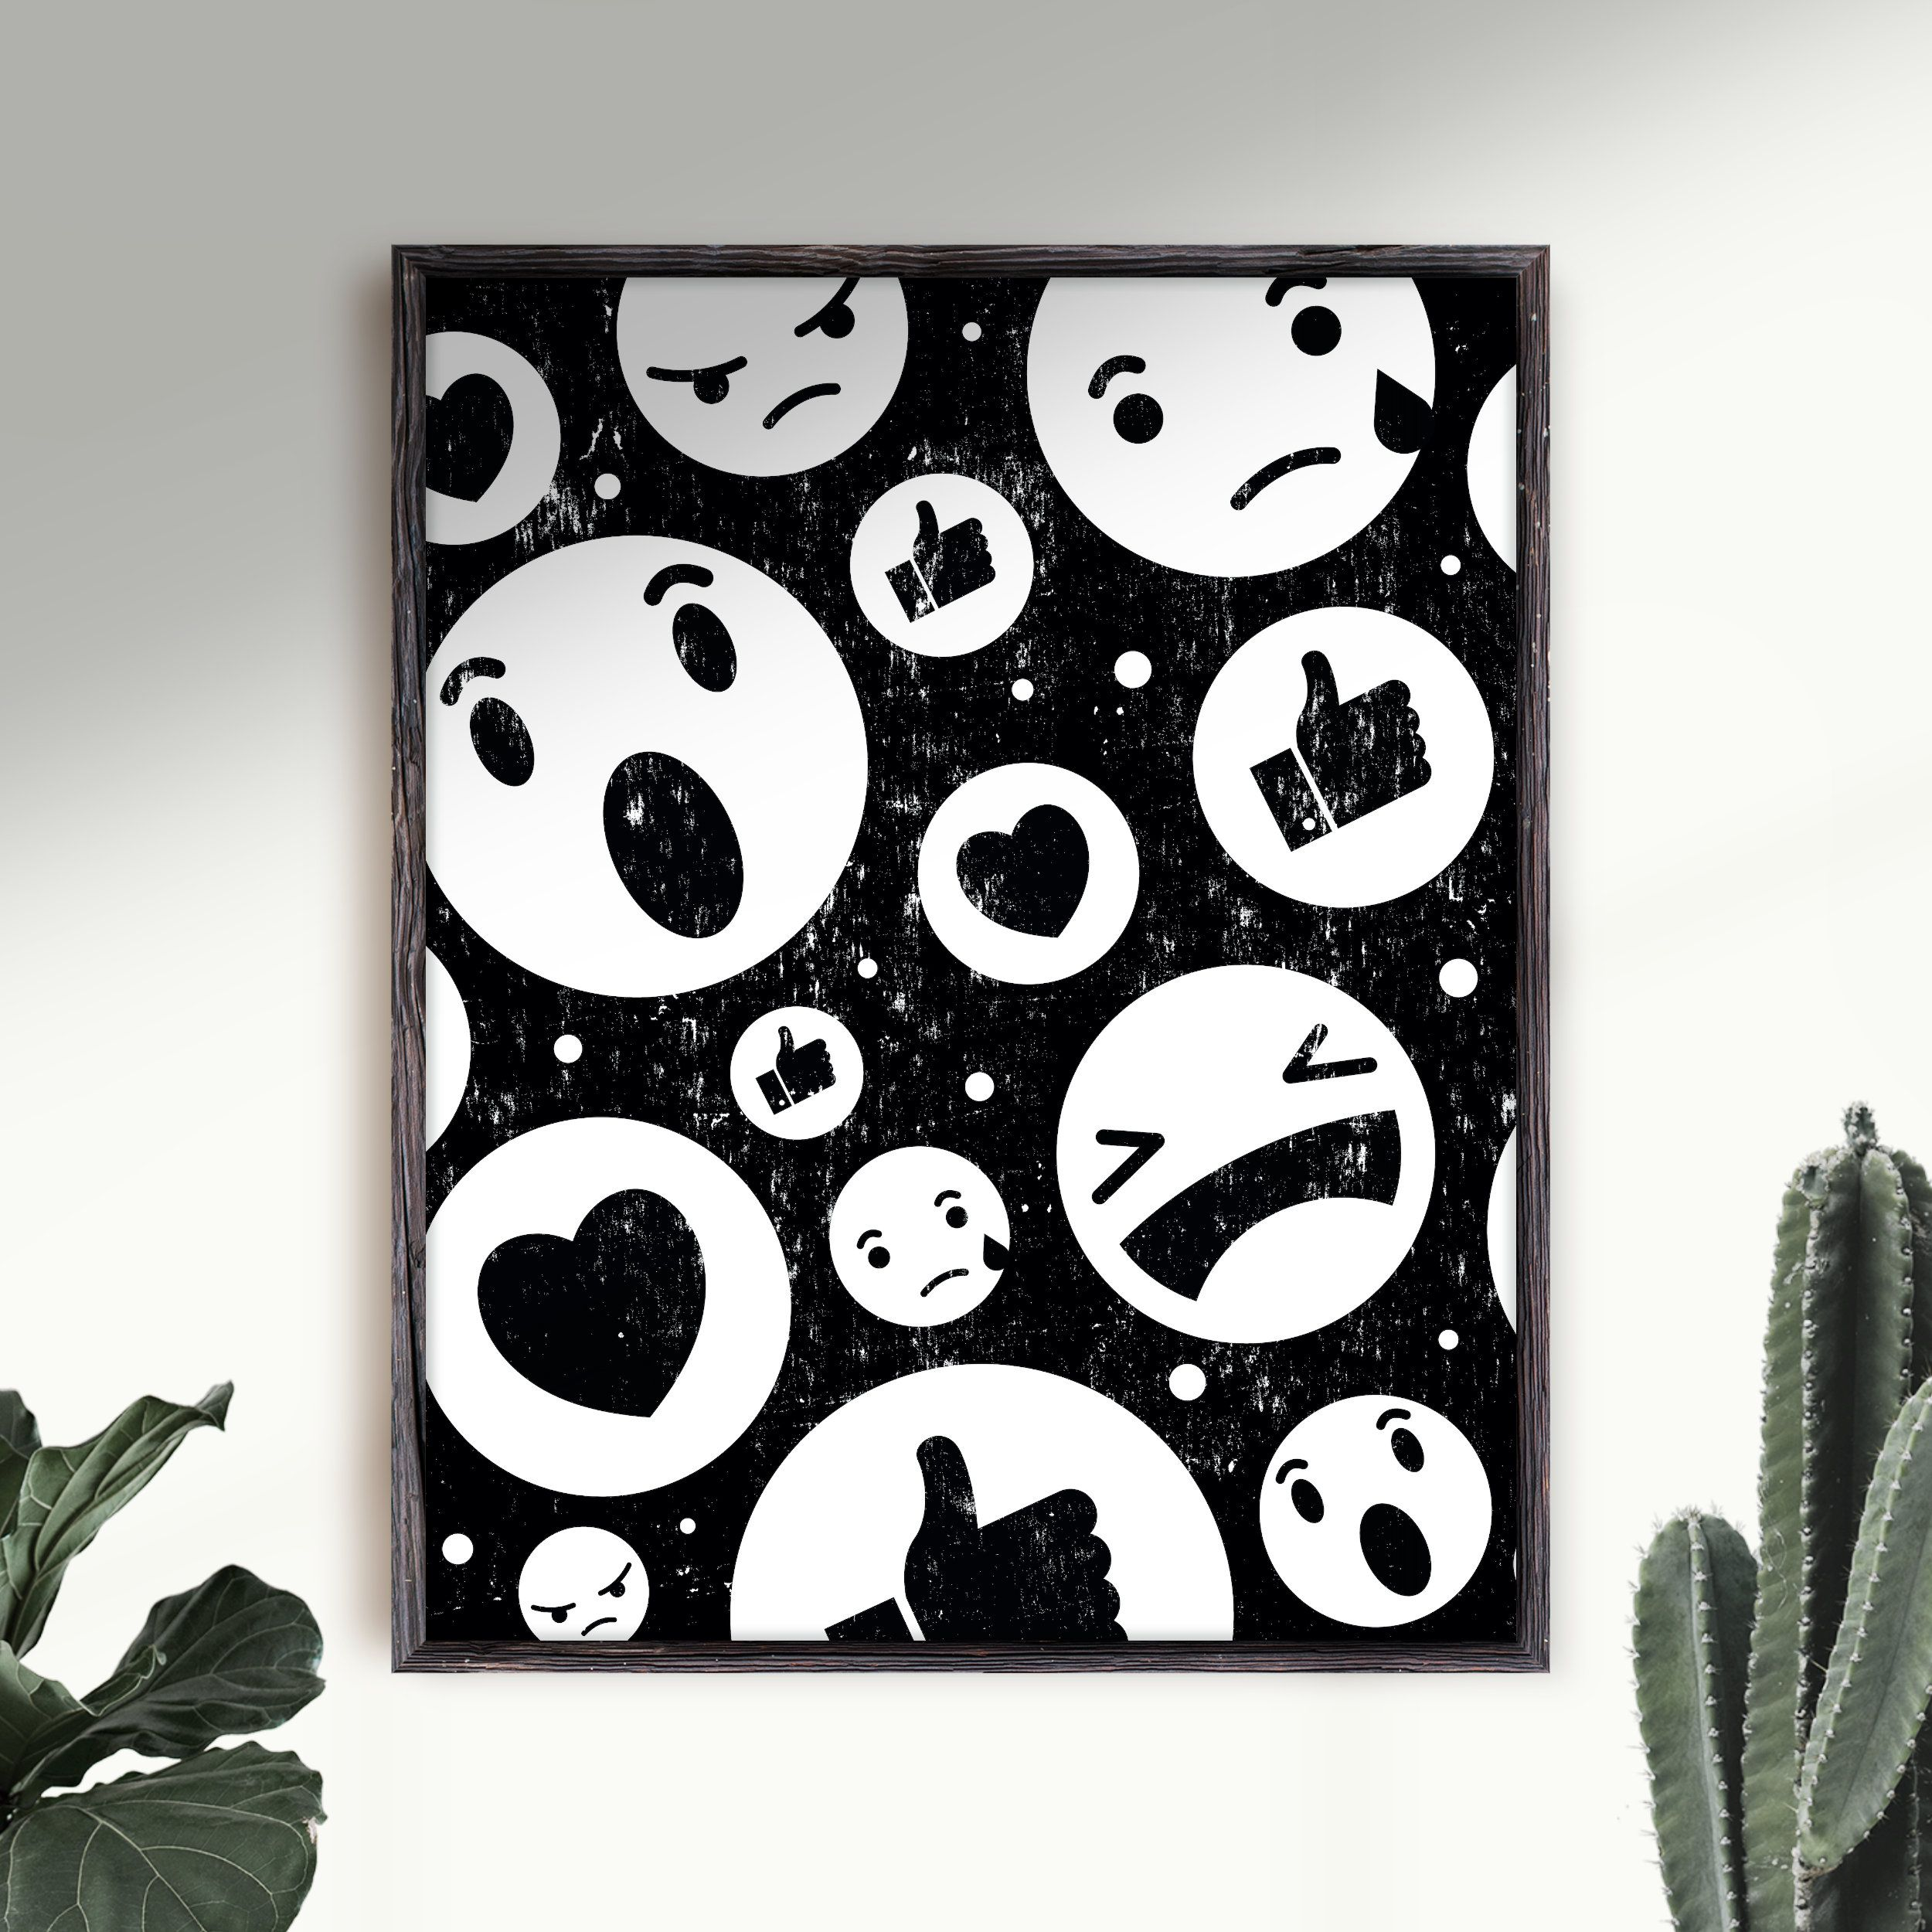 Emoji Art Print Emoji Faces Wall Art, Funny Room Decor